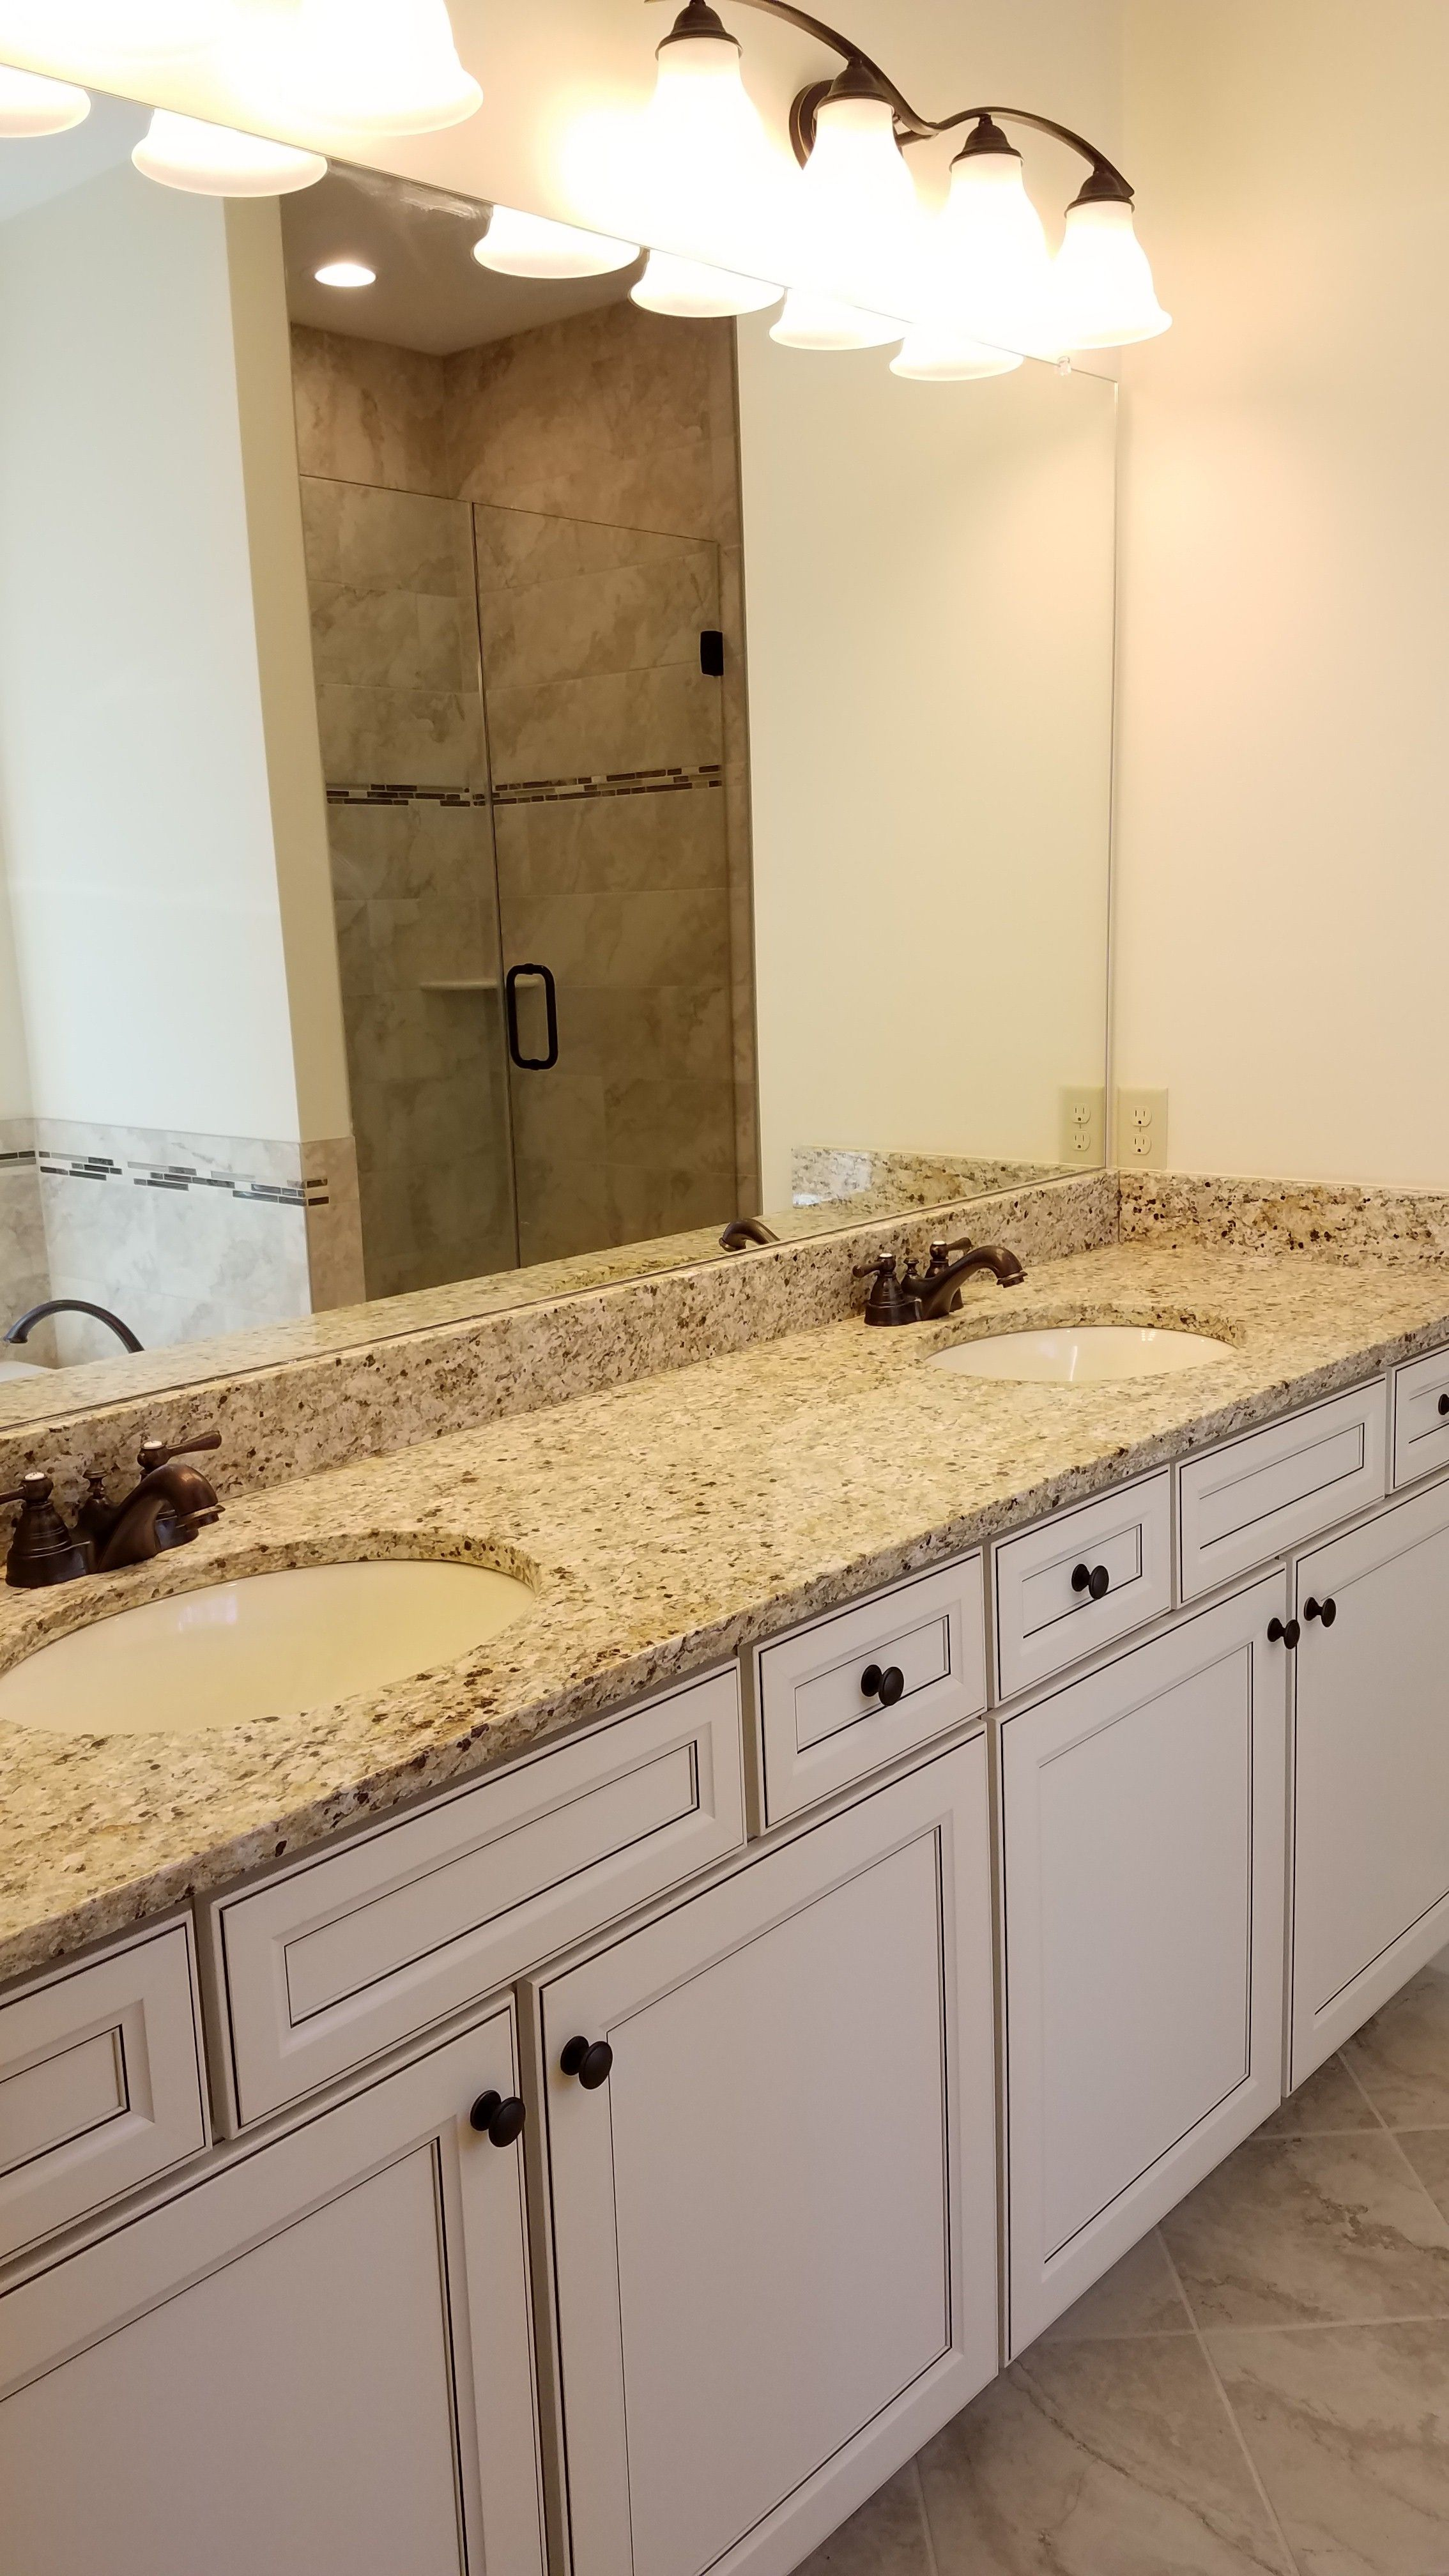 Bathroom featured in The Merion By Keswick Pointe in Poconos, PA